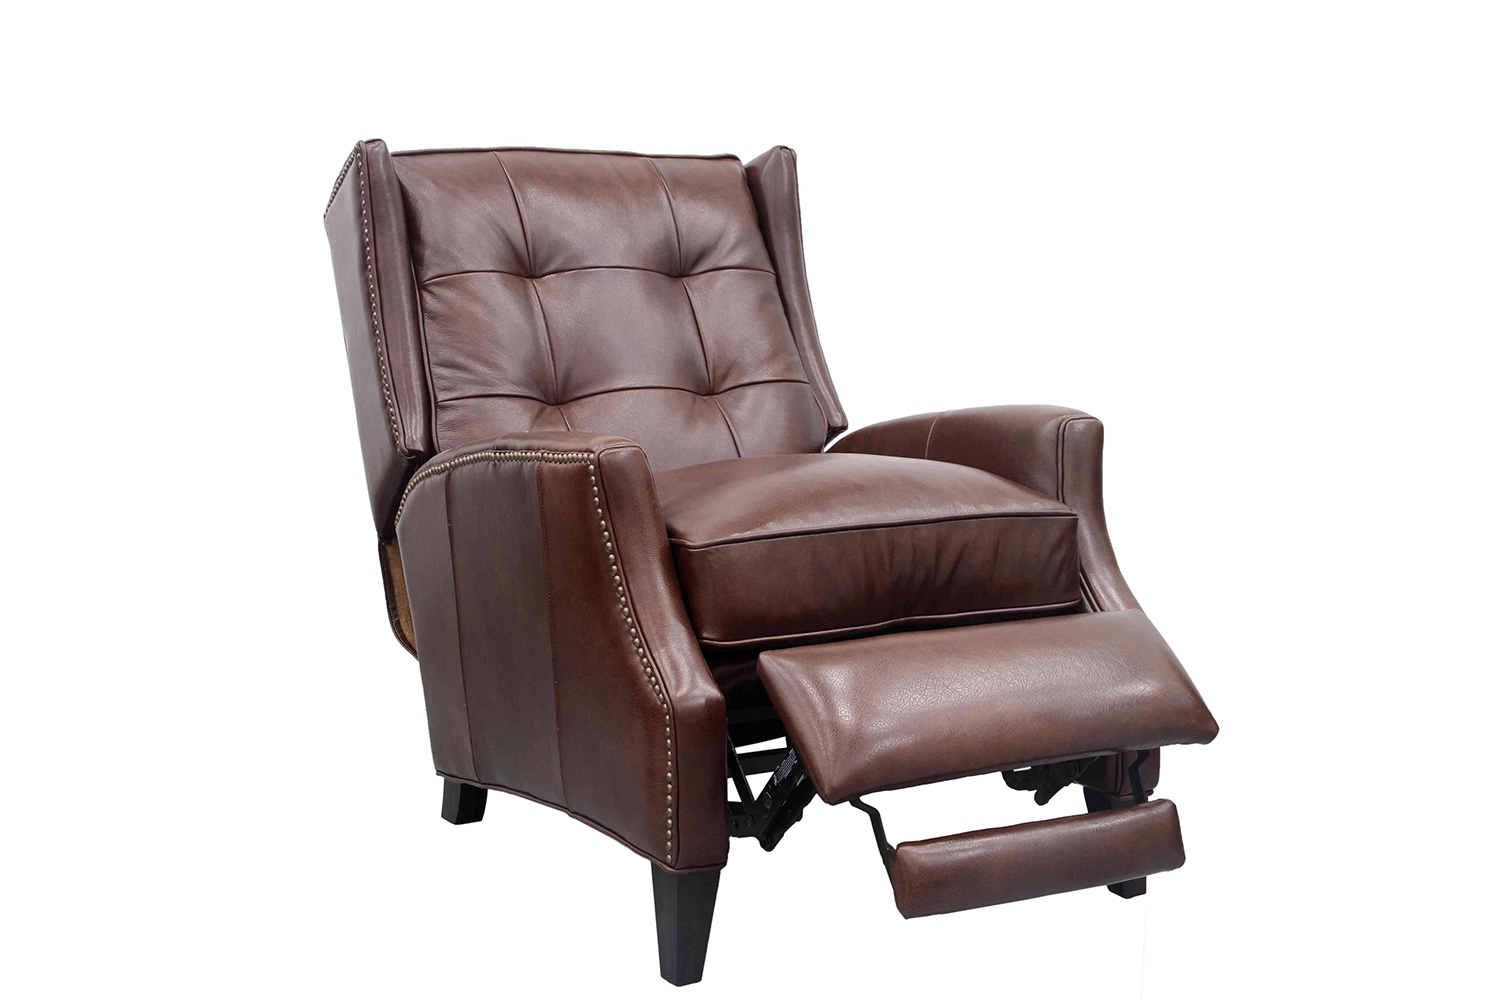 Barcalounger Lincoln Recliner Chair - Shoreham Chocolate/All Leather